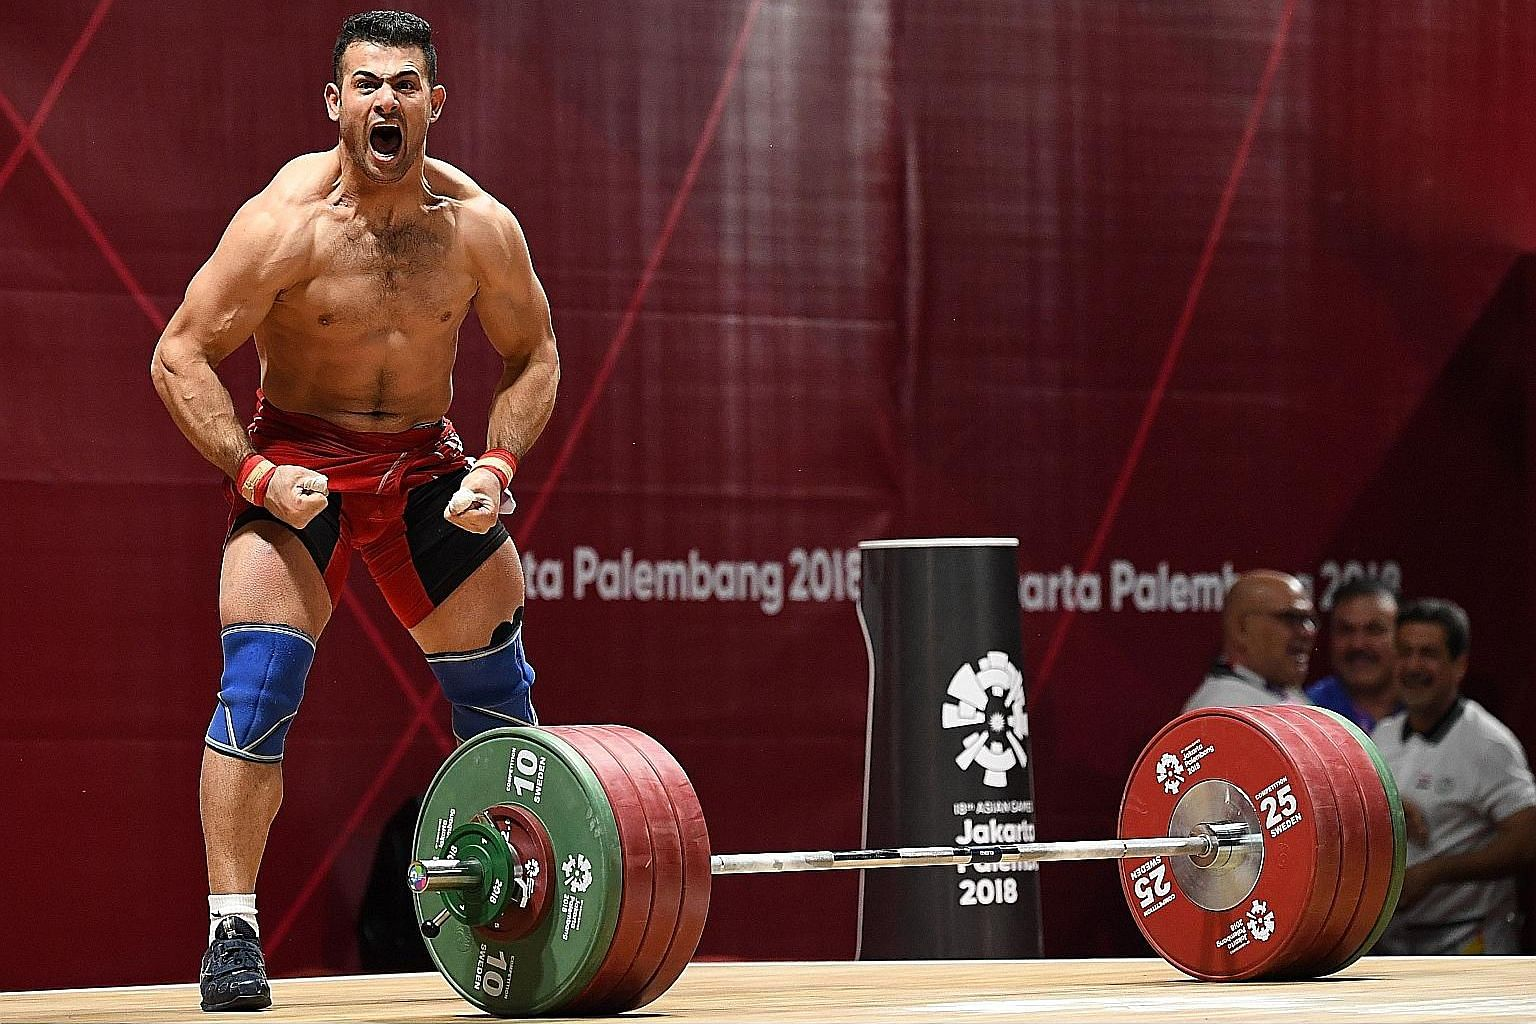 Iraq's Safaa Aljumaili's unbridled and bare-bodied reaction to winning Iraq's first gold of these Games in the 85kg weightlifting event yesterday. He was joined by an equally overjoyed Iraqi official who kissed the platform several times in thanks.